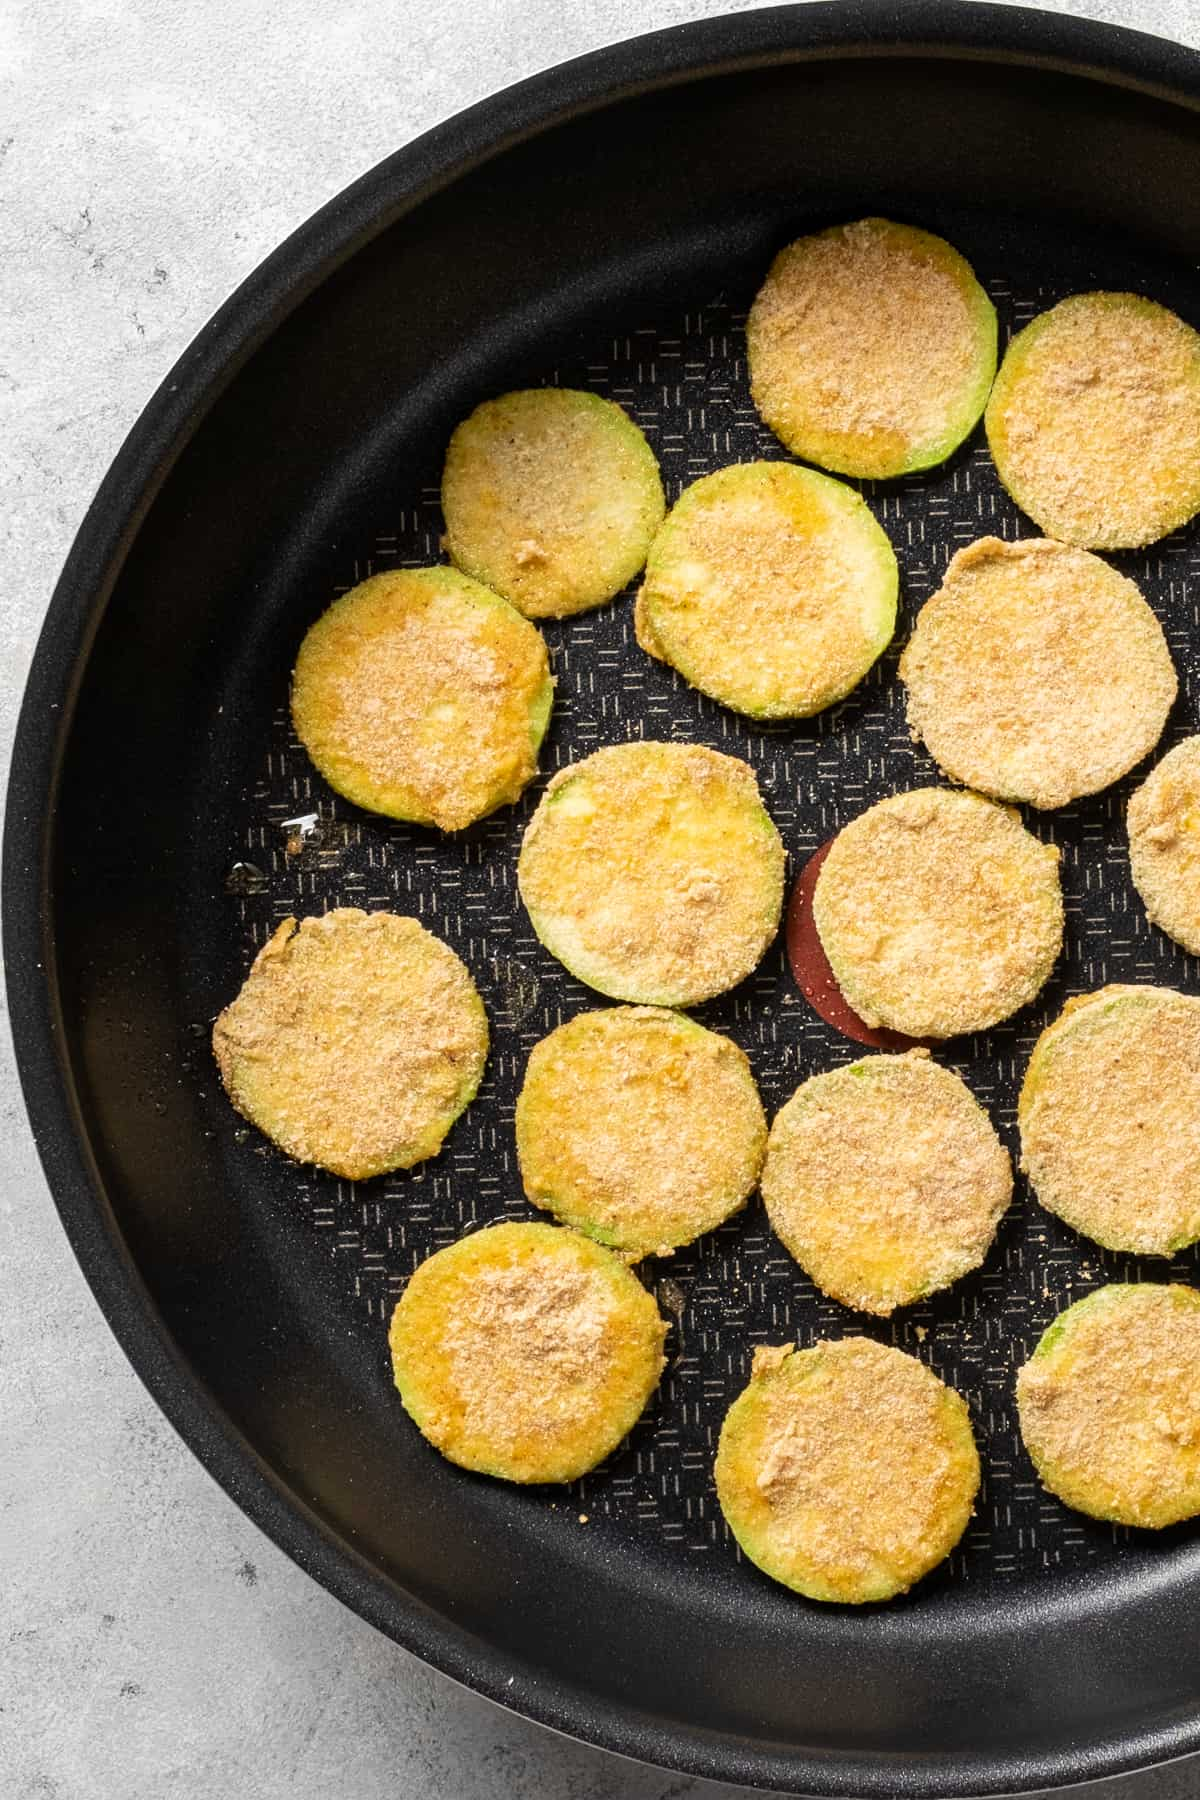 Breaded zucchini slices frying in a non-stick pan.